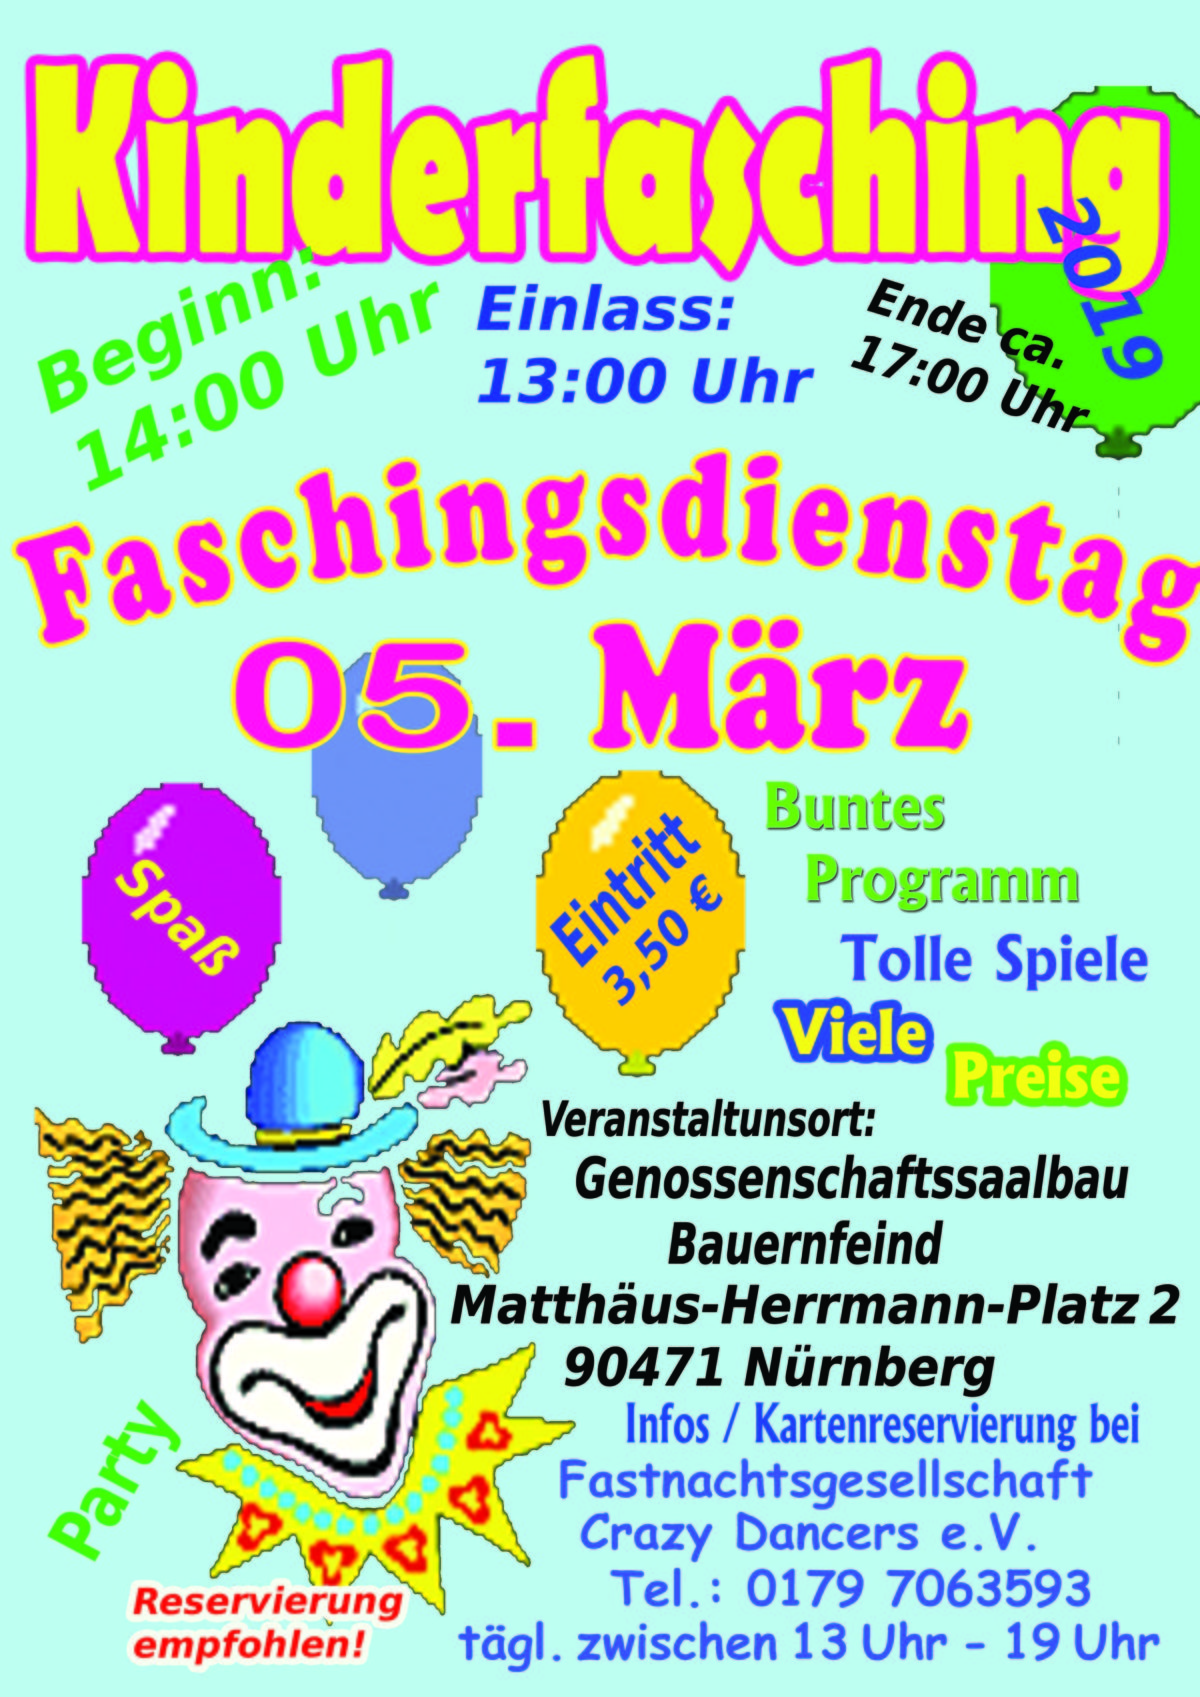 Kinderfasching in Nürnberg am Faschingsdienstag 05.03.2019